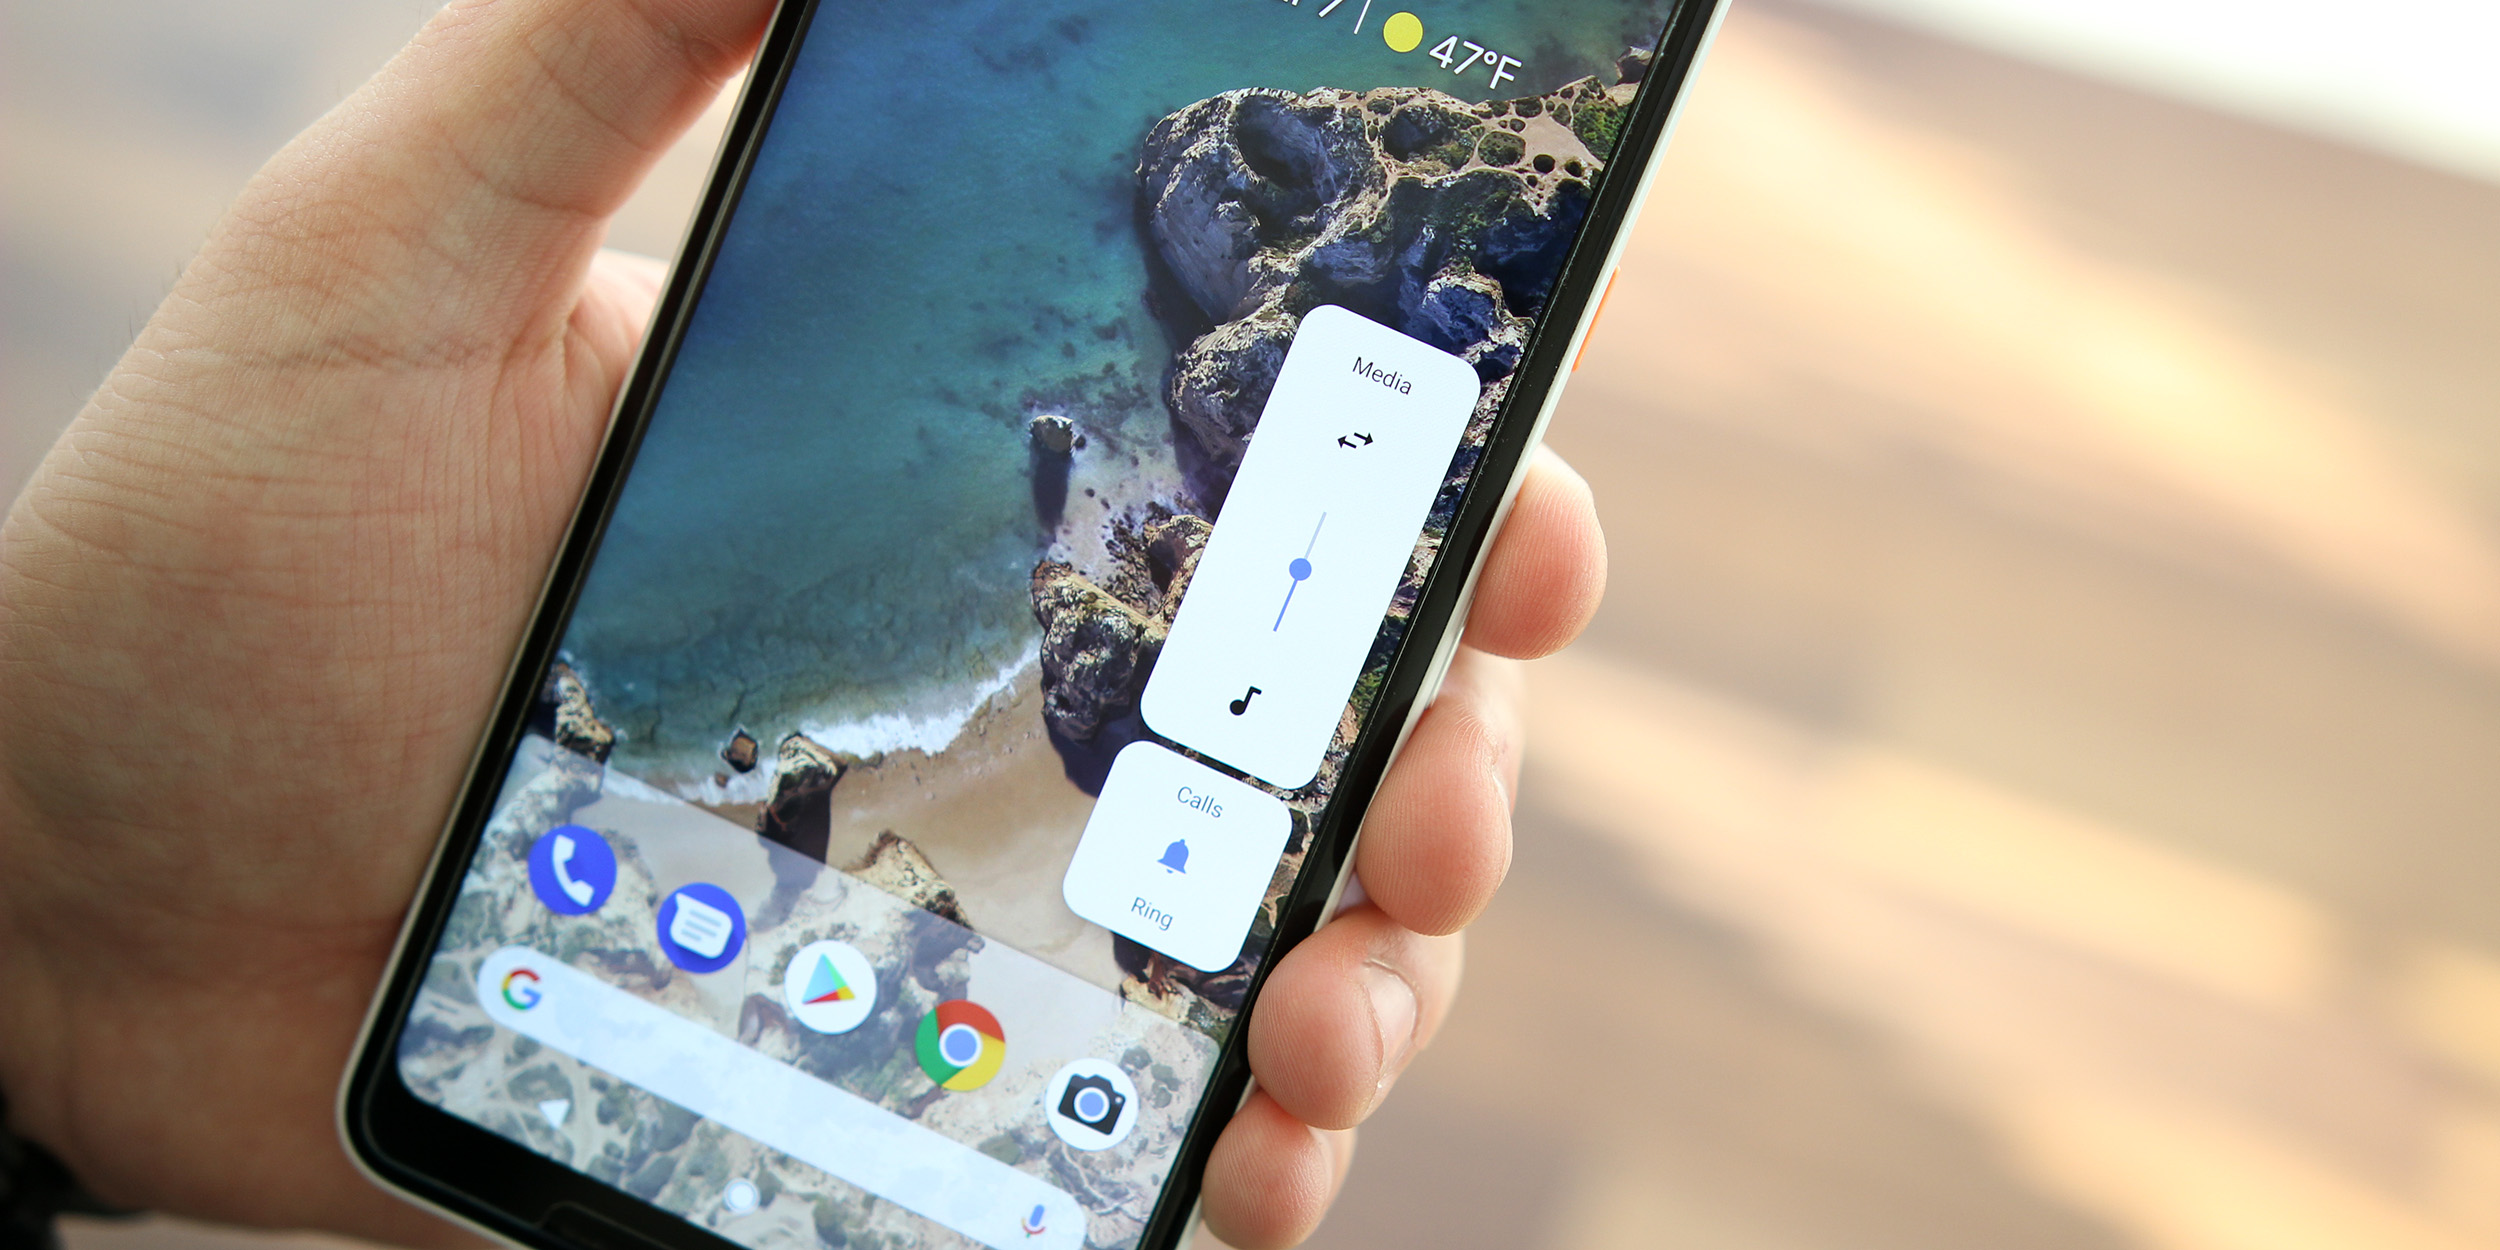 Here's how to bring Android P's volume slider and launcher to older